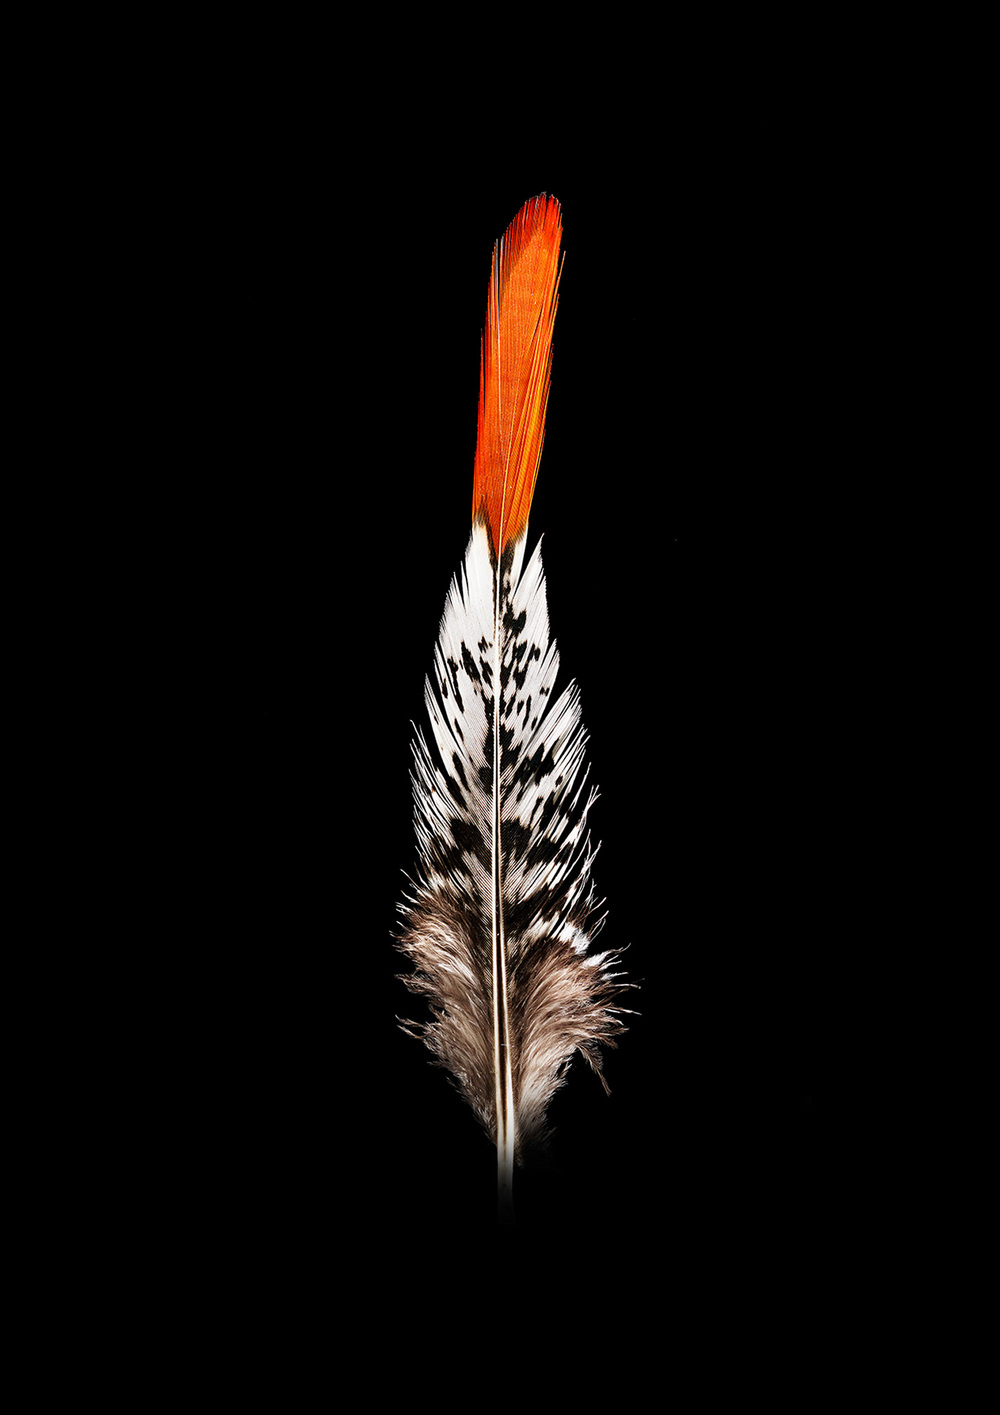 Chris Hoare - Feather